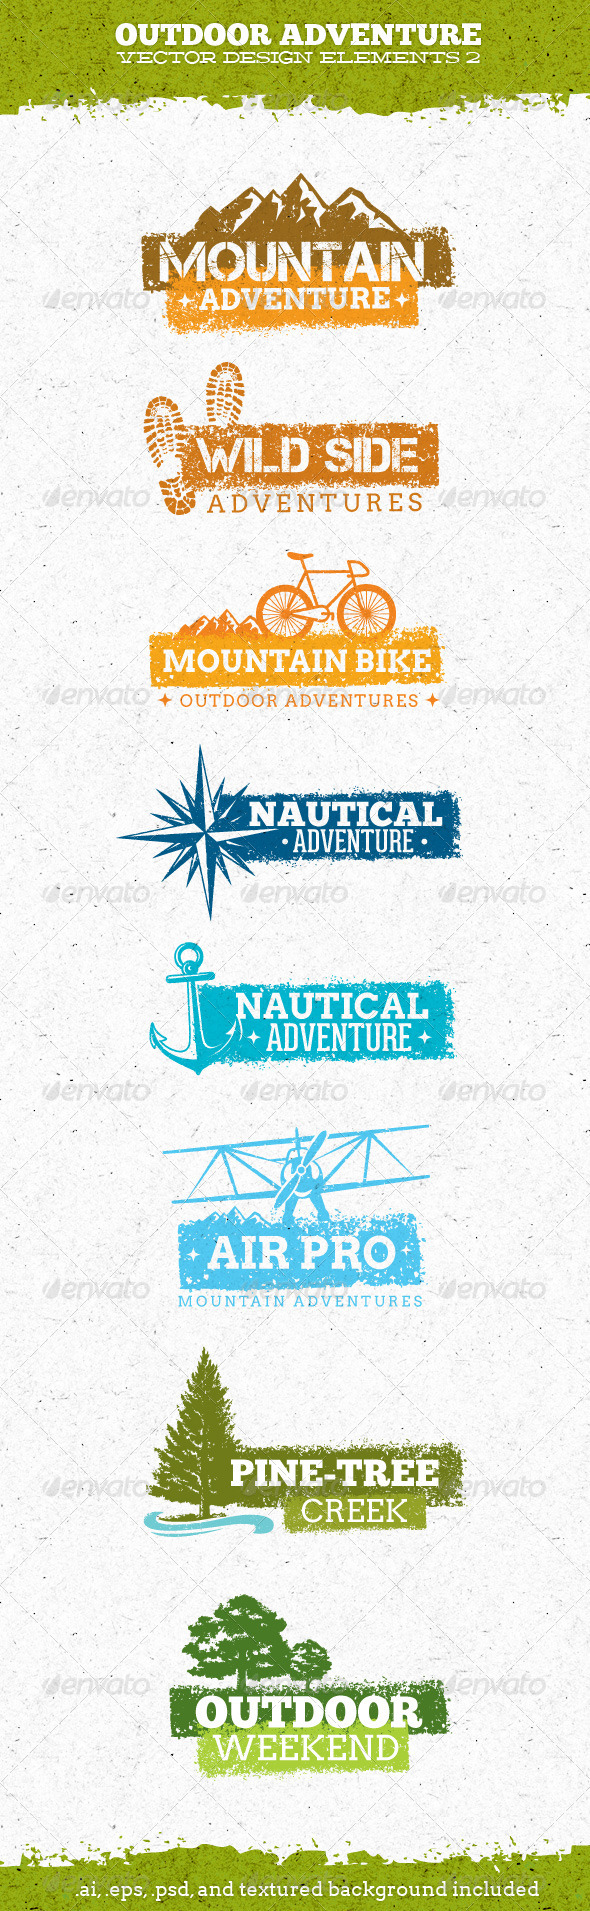 GraphicRiver Outdoor Adventure Creative Vector Elements 2 6977467